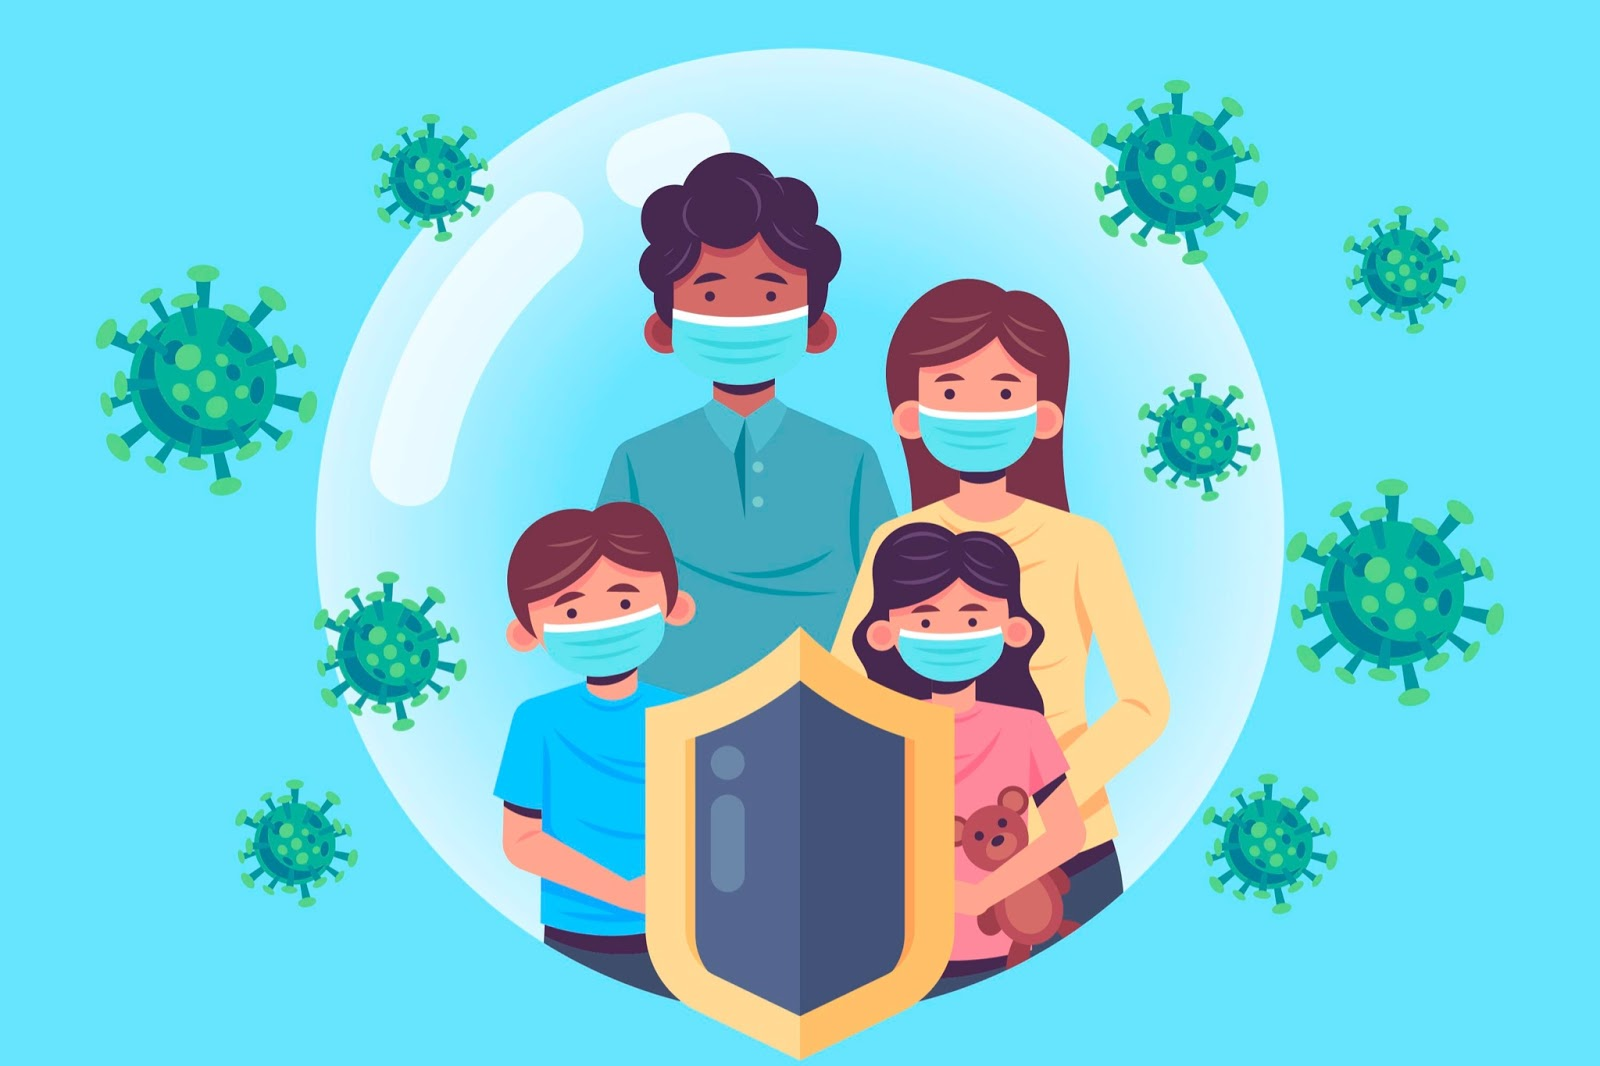 A masked family protected from the virus.